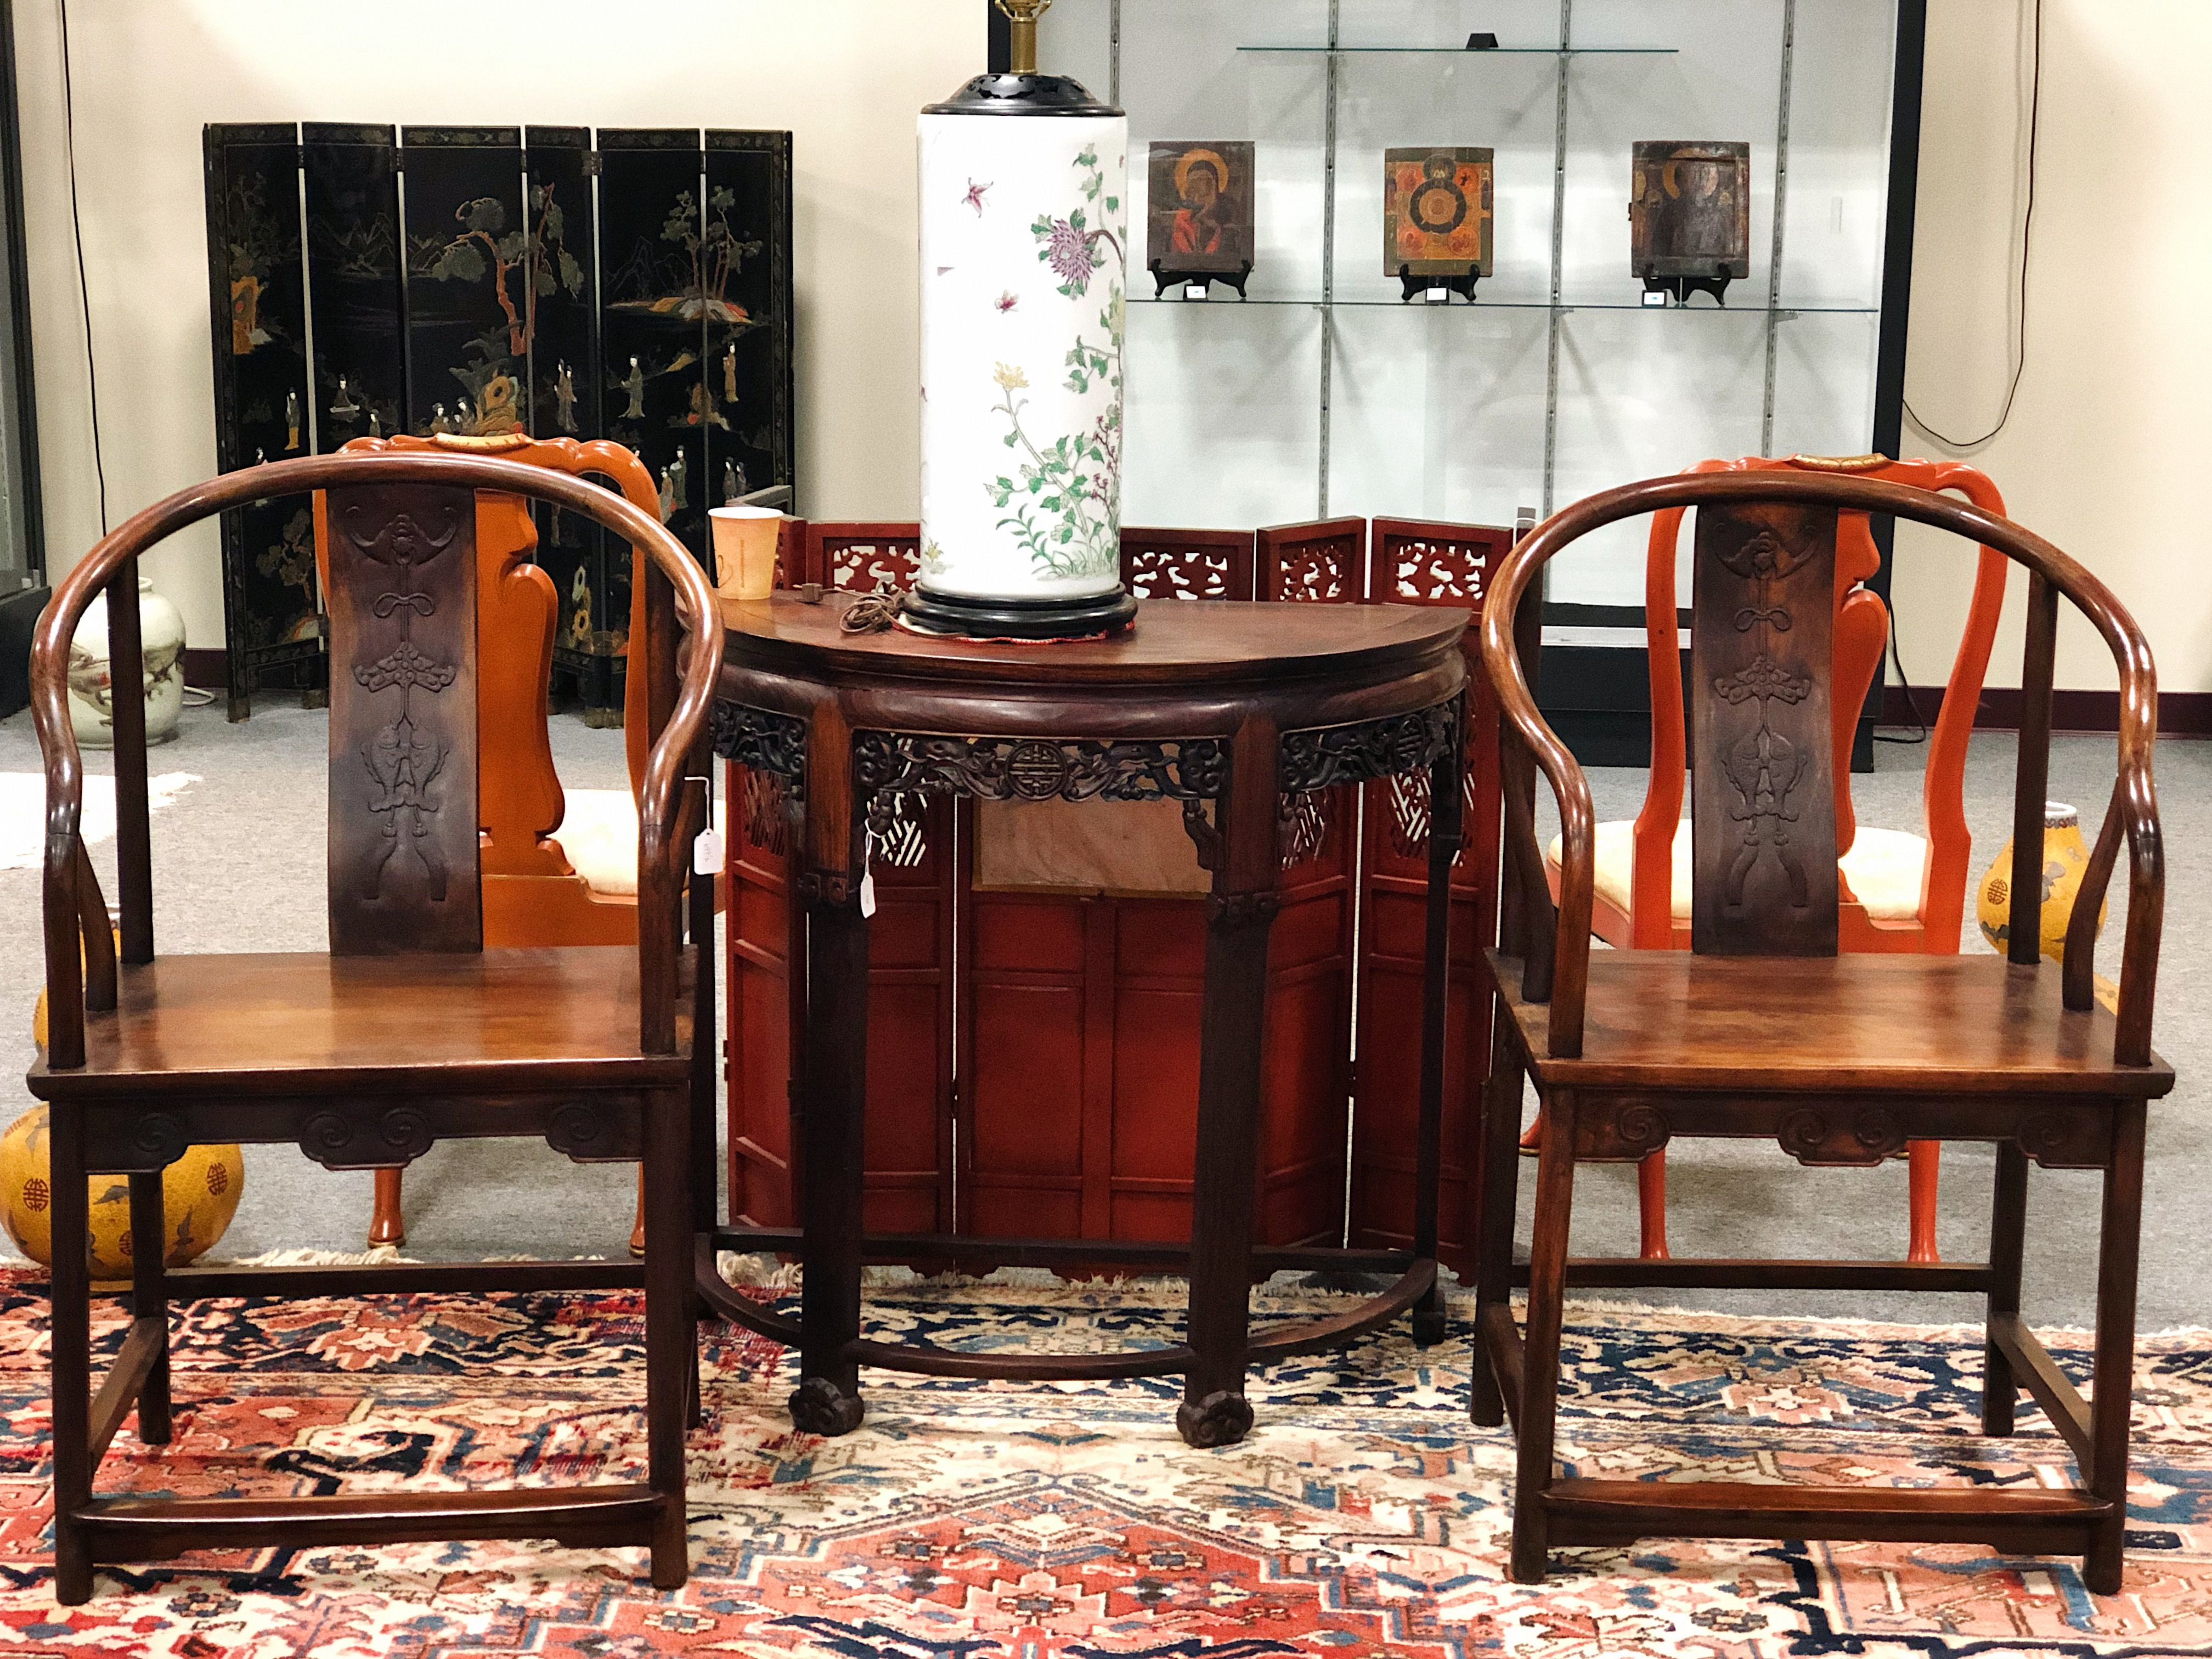 Chinese Furniture Especially Rosewood Furniture Has Been A Big